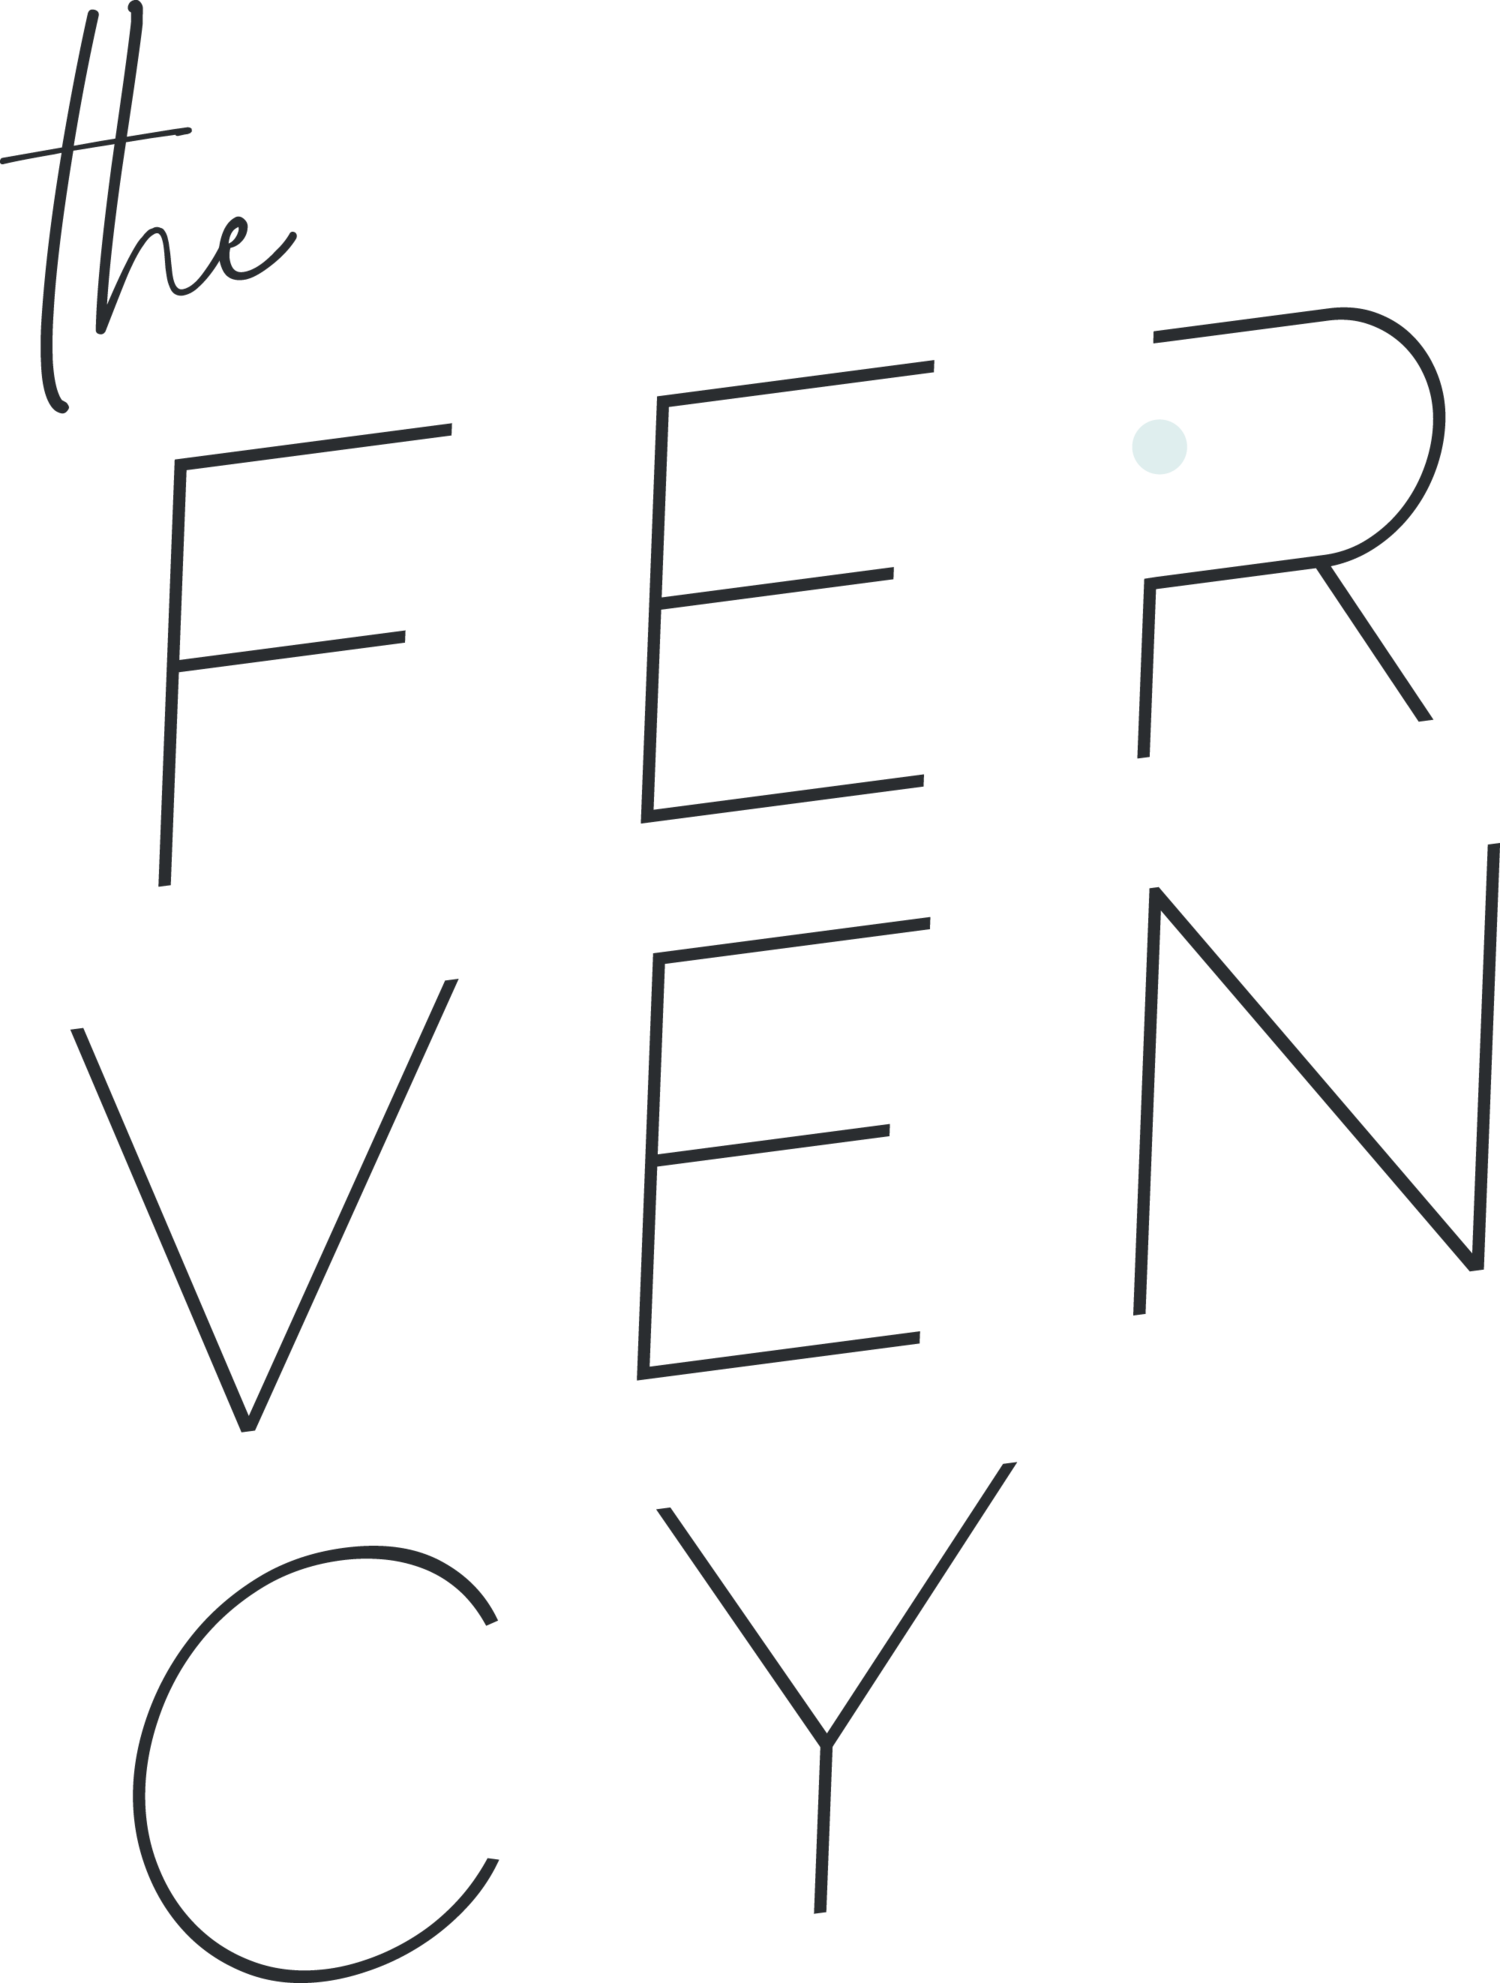 The Fervency